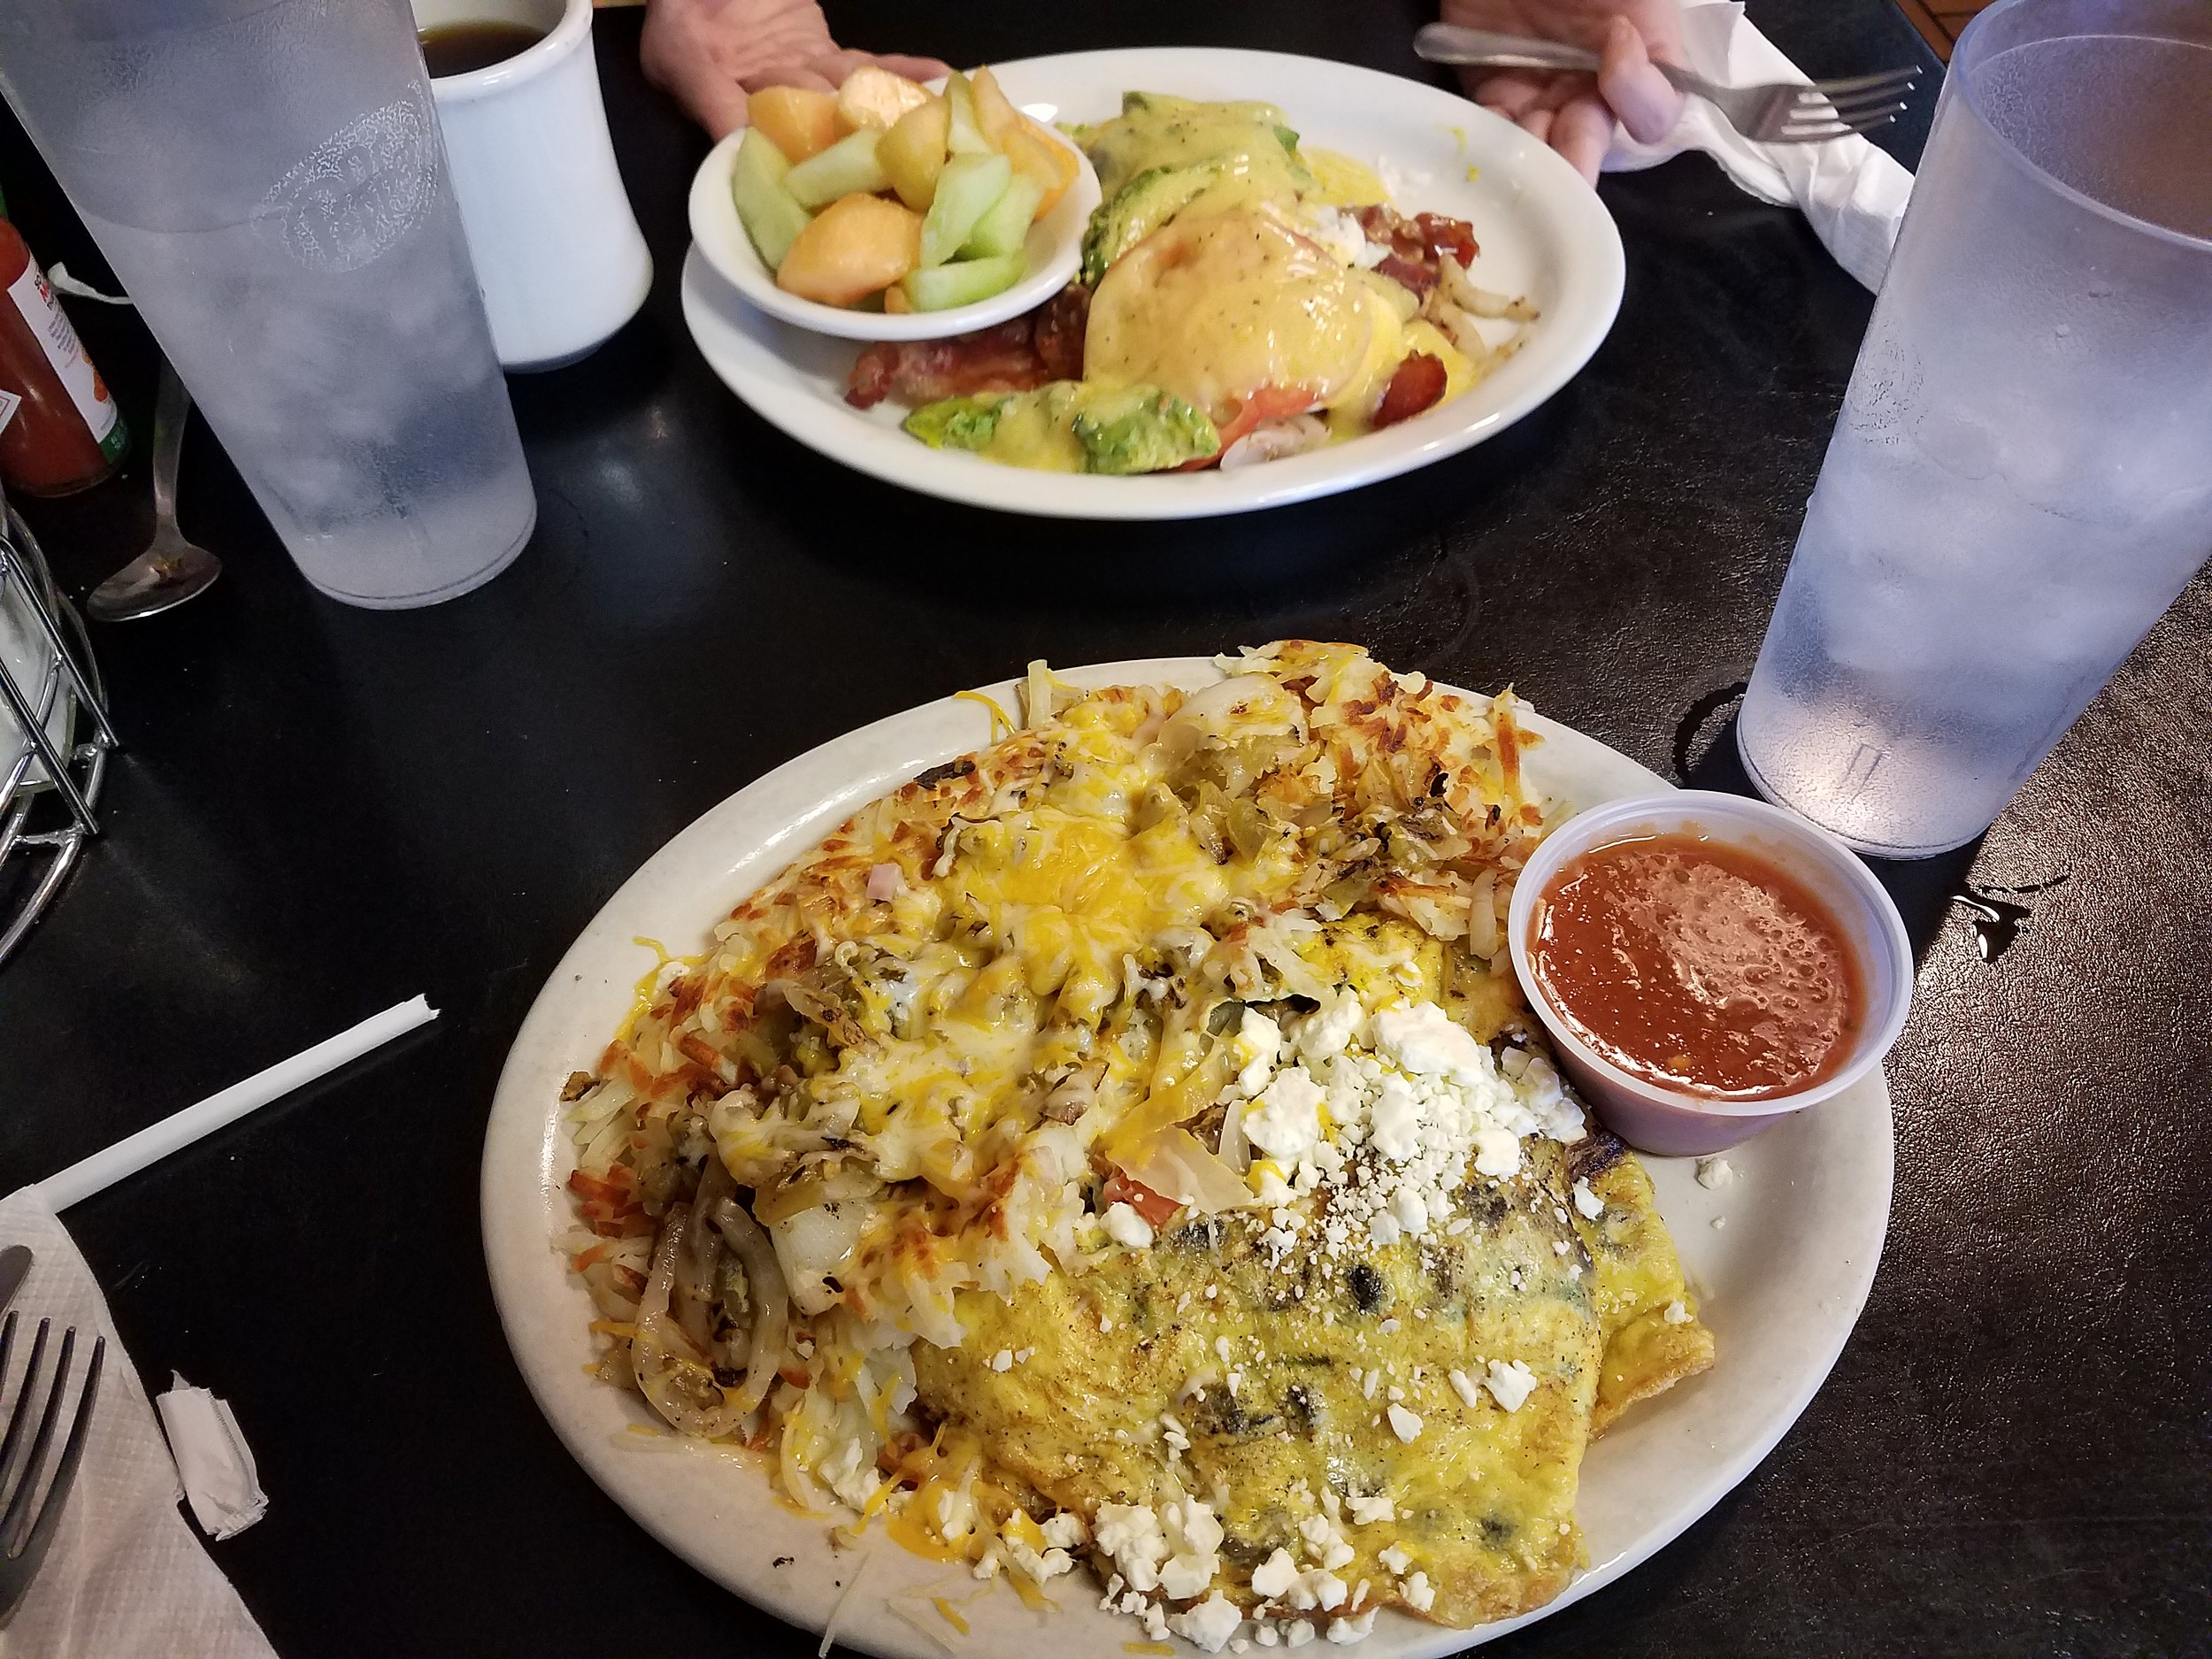 House Eggs Benedict with Fruit & a Huge Omelette with Stuffed Hash Browns